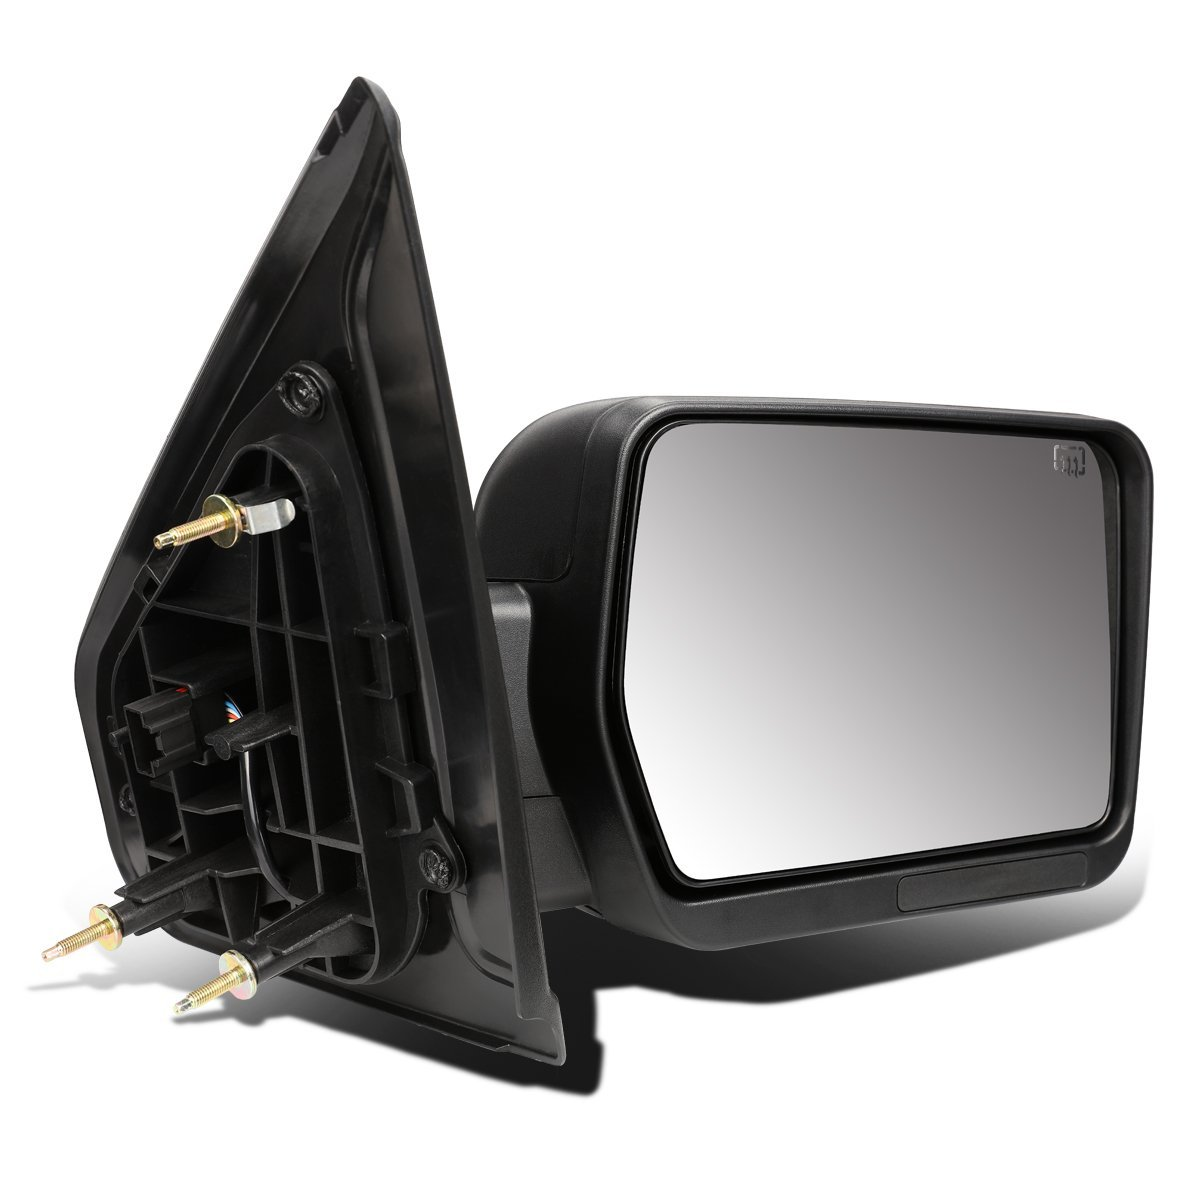 DNA motoring TWM-019-T111-BK-R Towing Side Mirror Assembly, Right Side Only